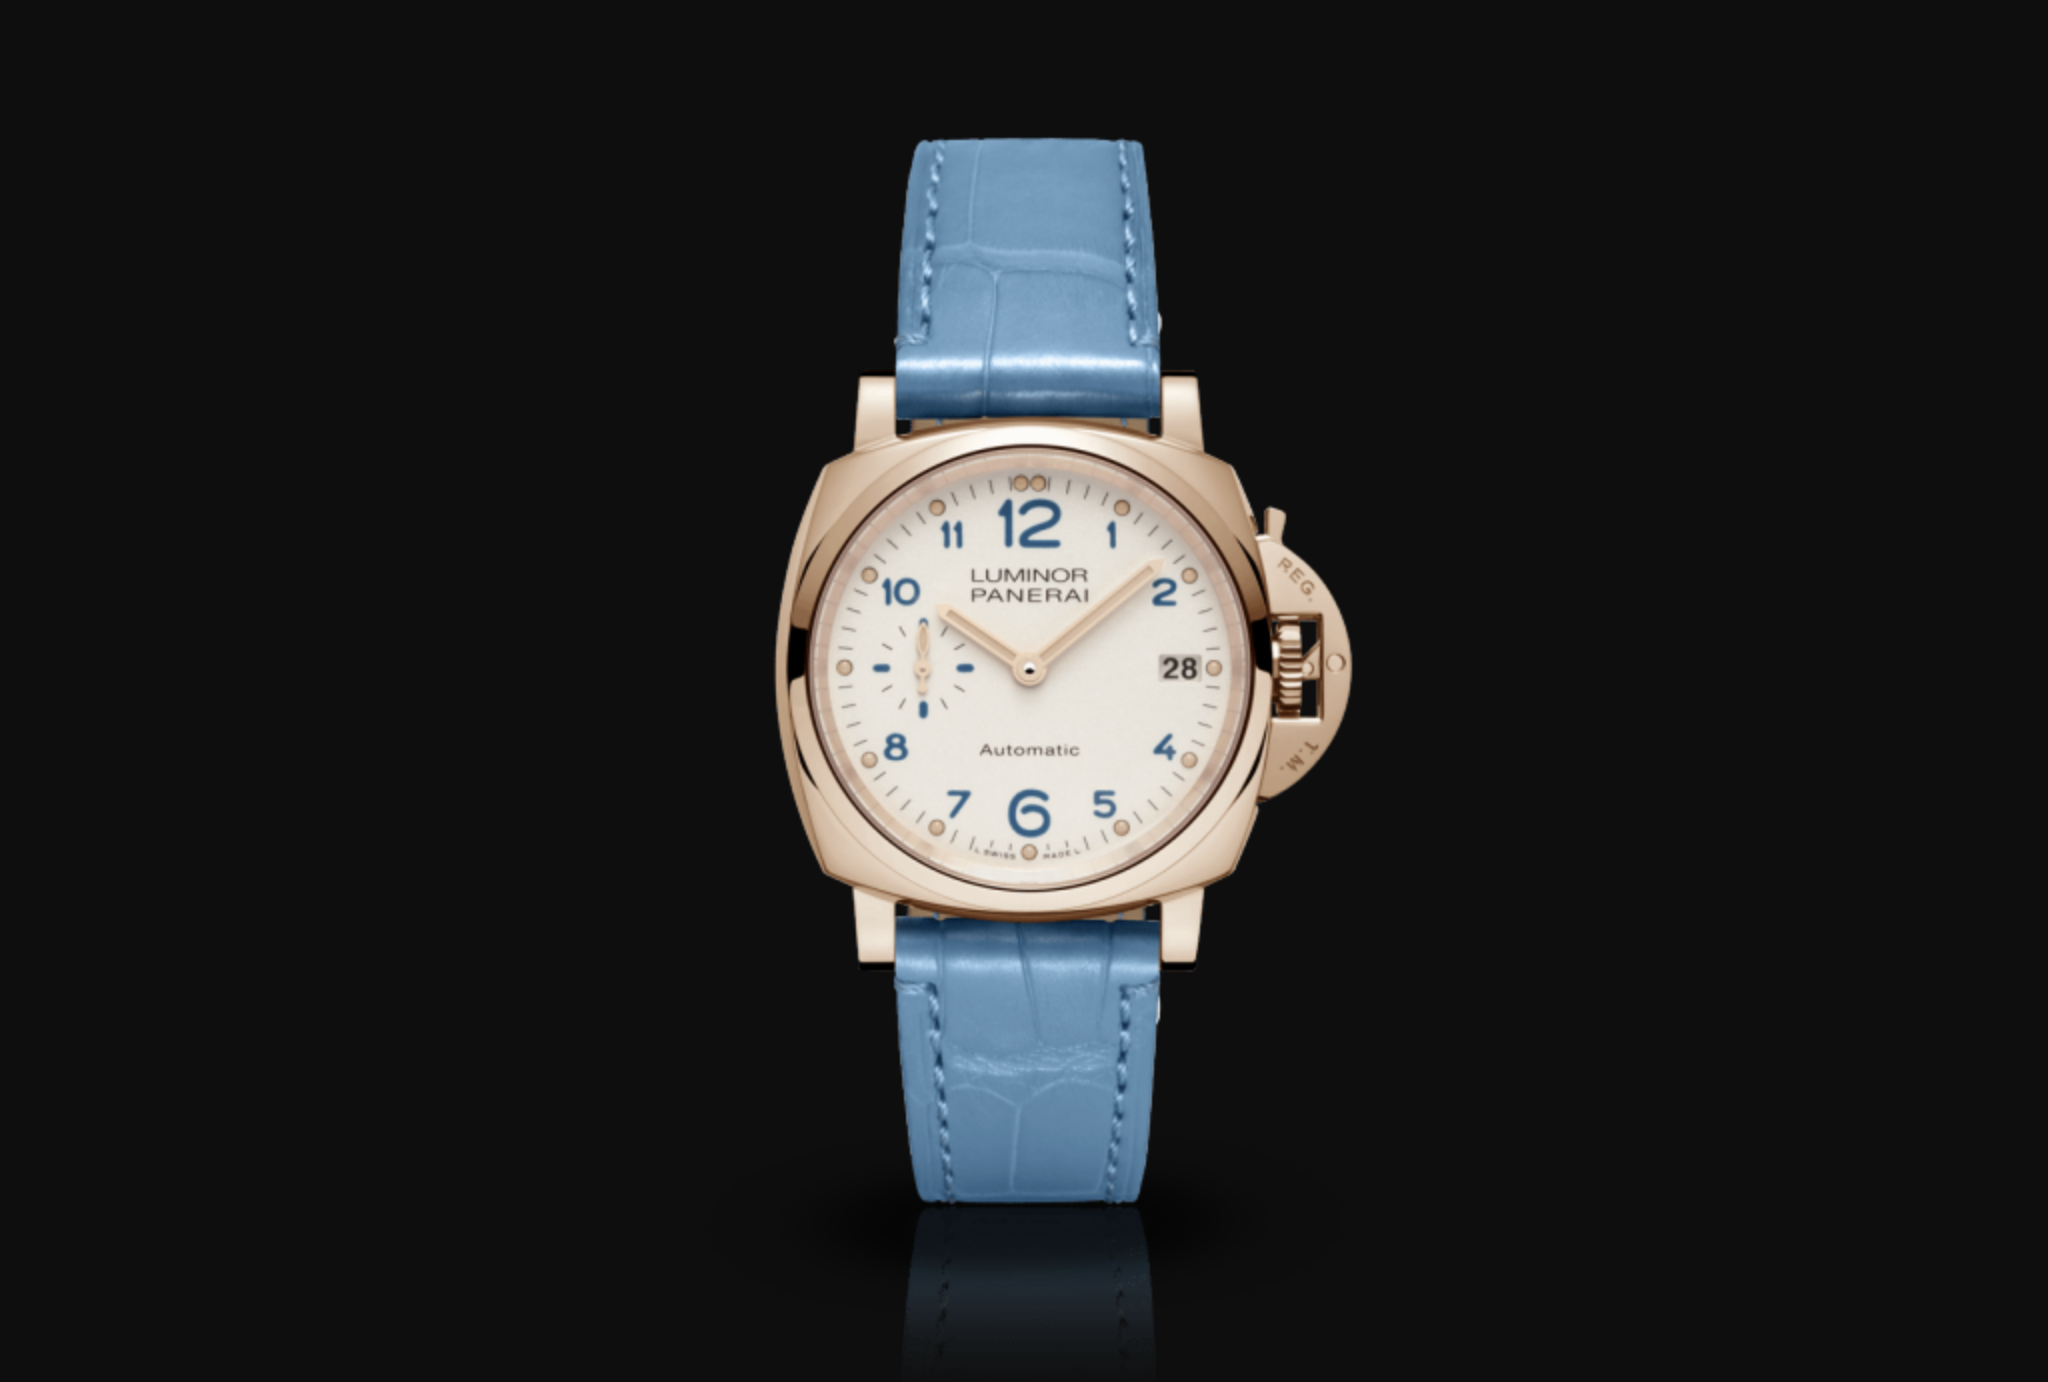 This is the first time a Panerai watch has been made under 38mm